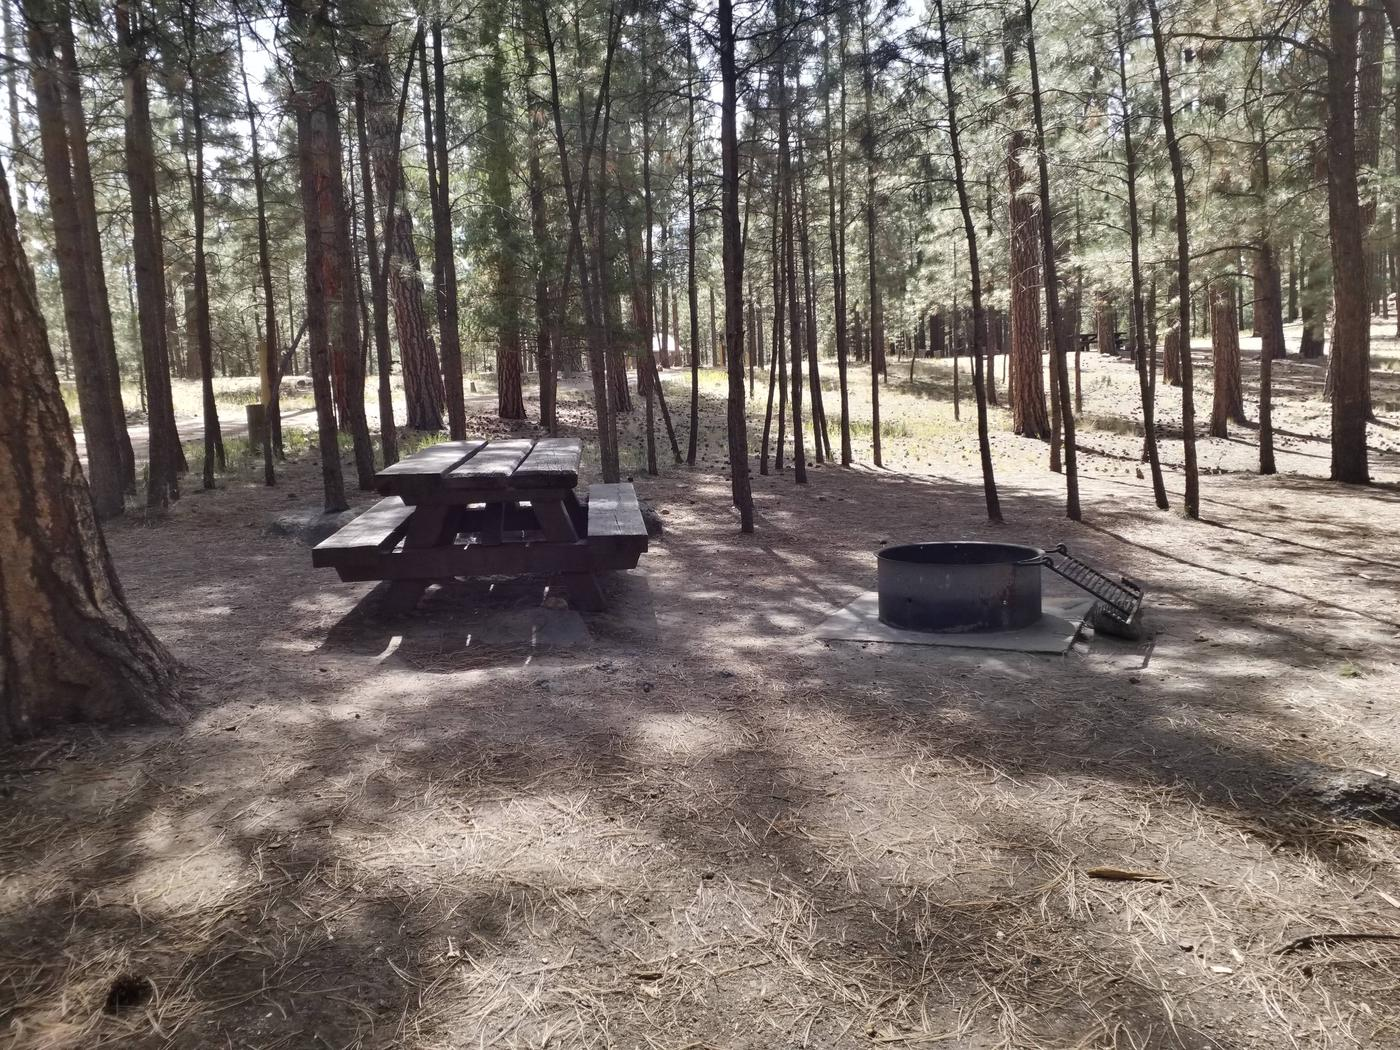 A picnic table with a metal fire ring are shaded by pine trees.Site 35